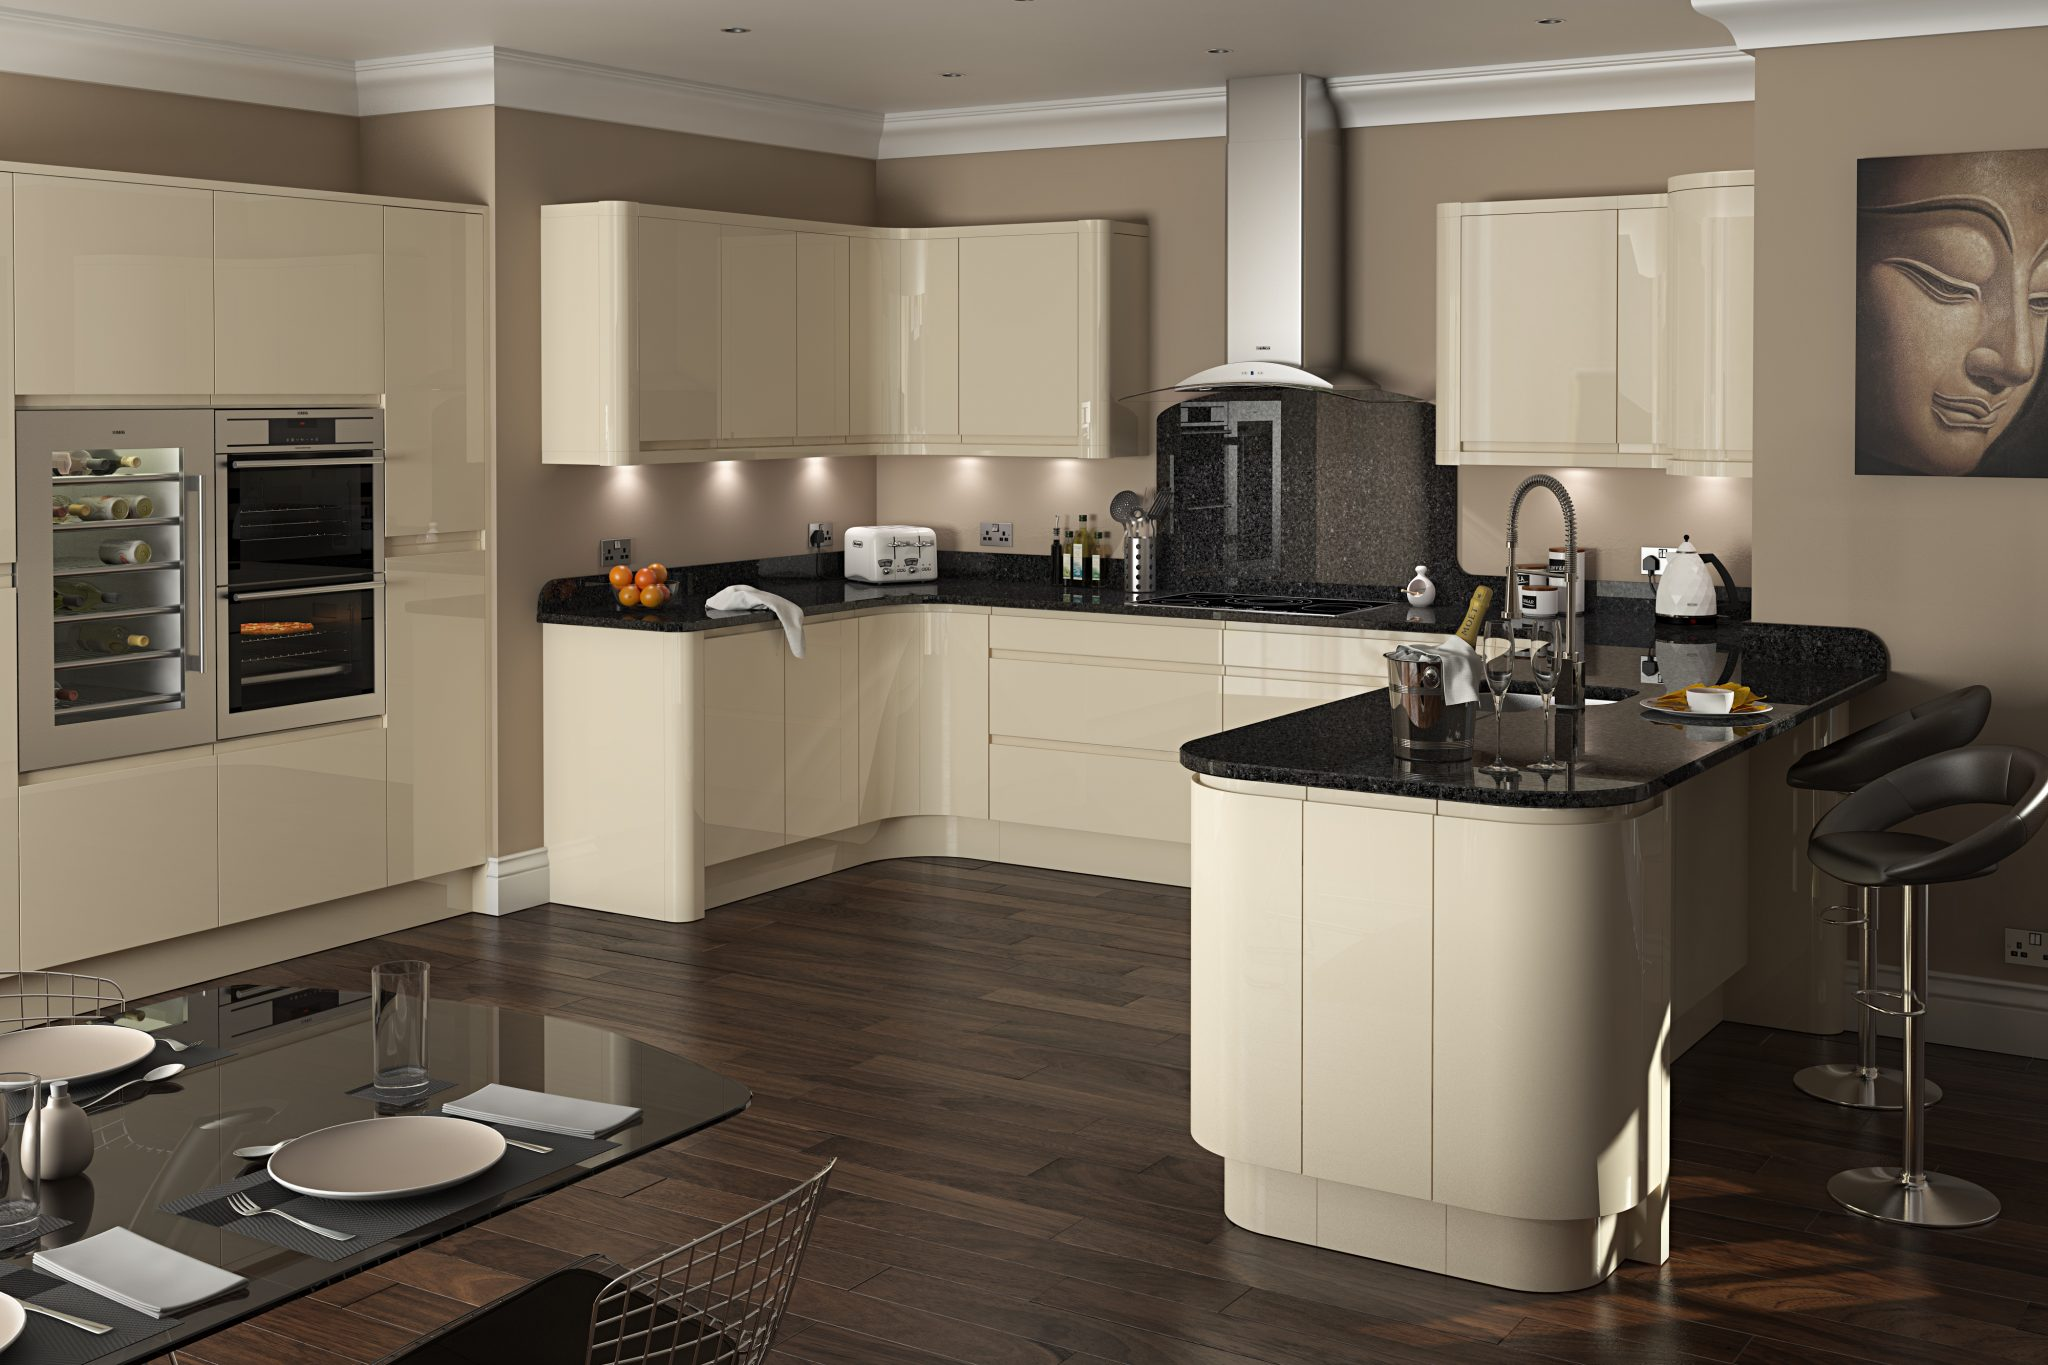 Kitchen design kitchens wirral bespoke luxury designs for Kitchen design images